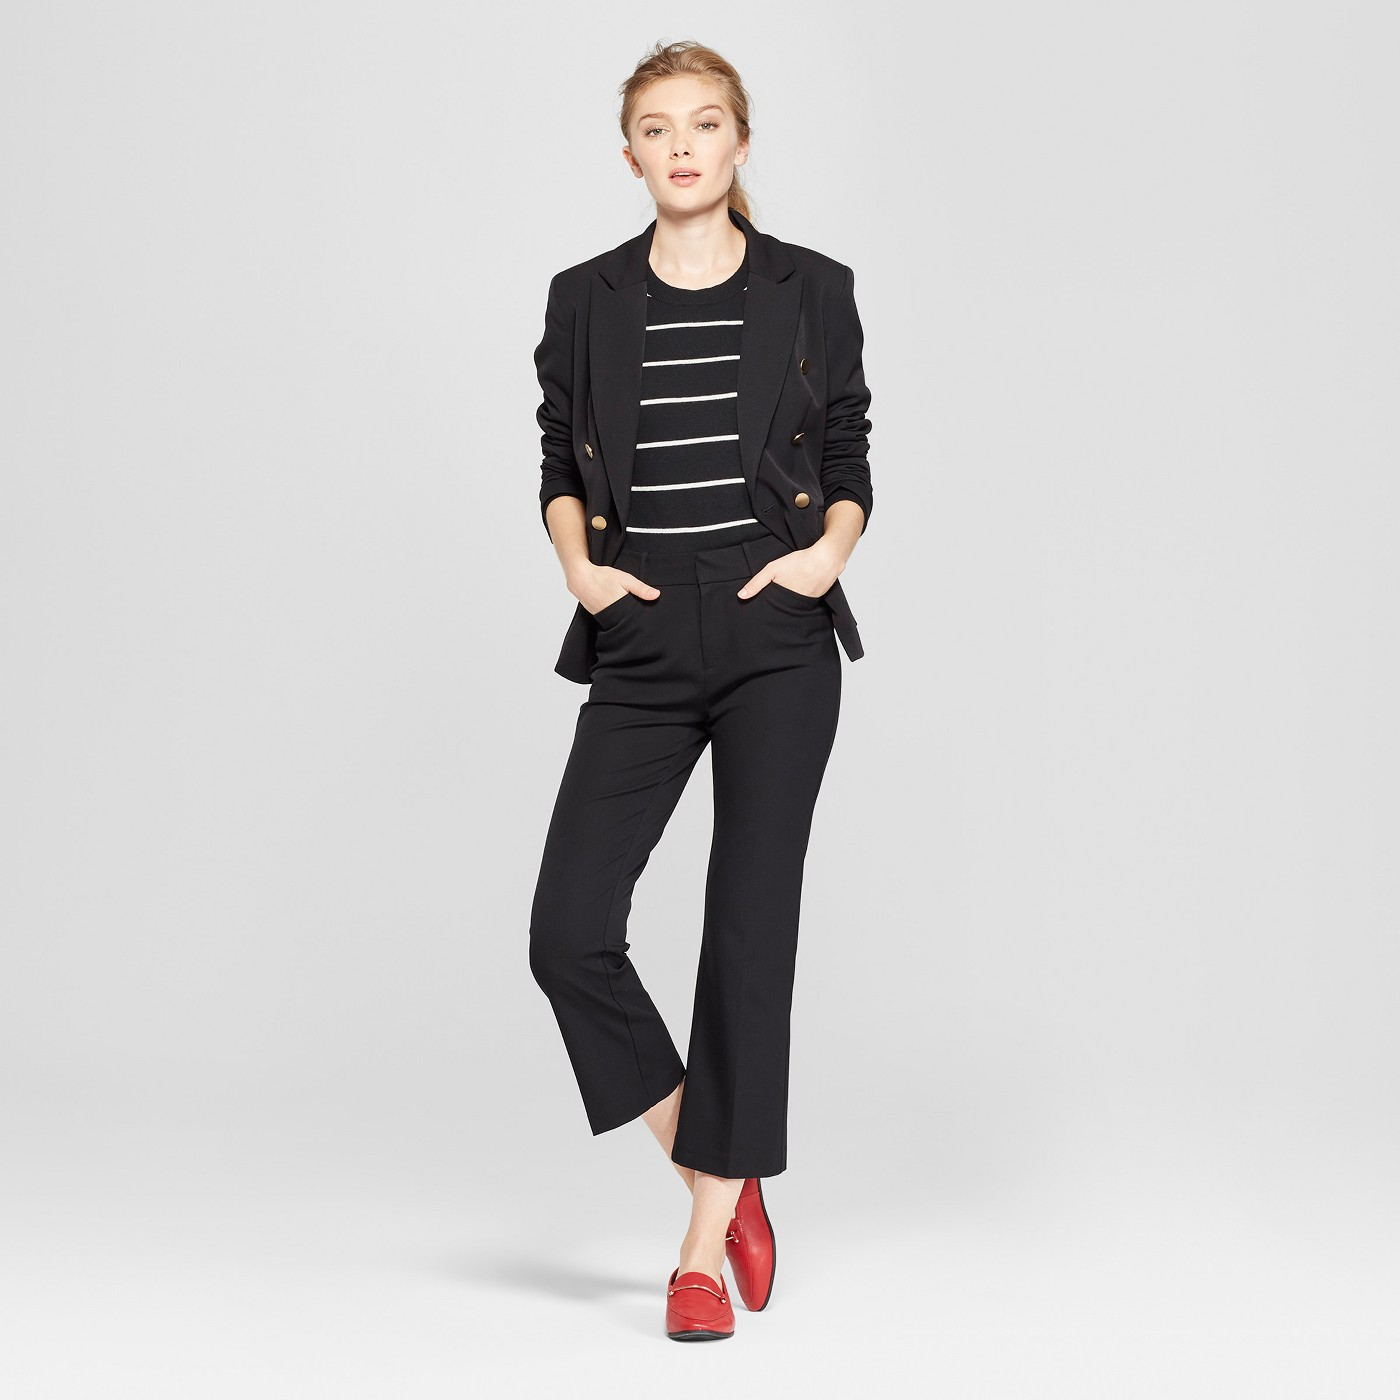 175215060bc1b https://www.refinery29.com/en-us/target-winter-clothing-2018 2018-10 ...